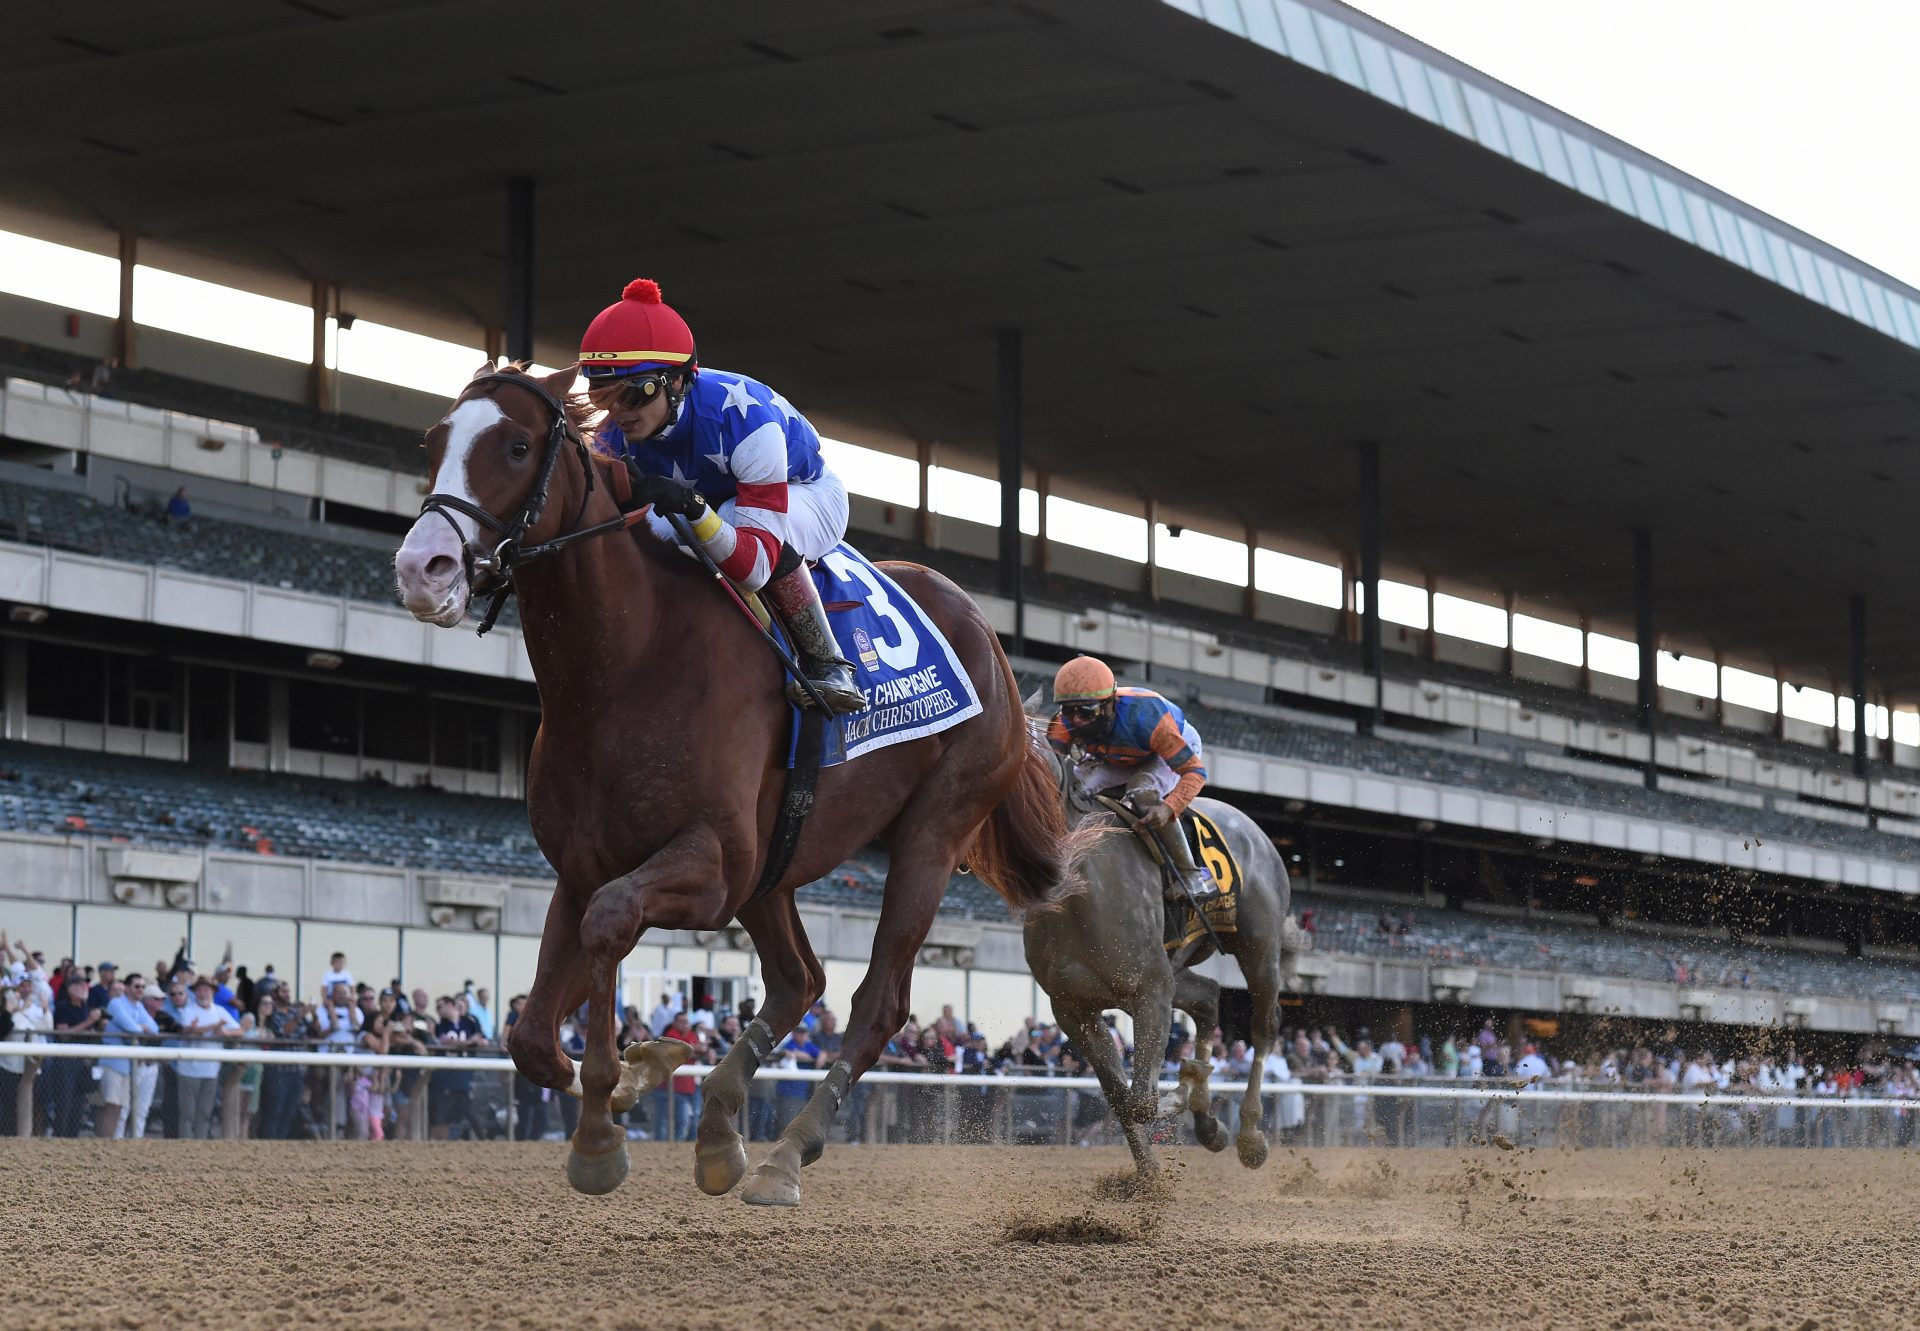 Money Fromheaven (Munnings) winning the Maryland Juvenile Filly Championships